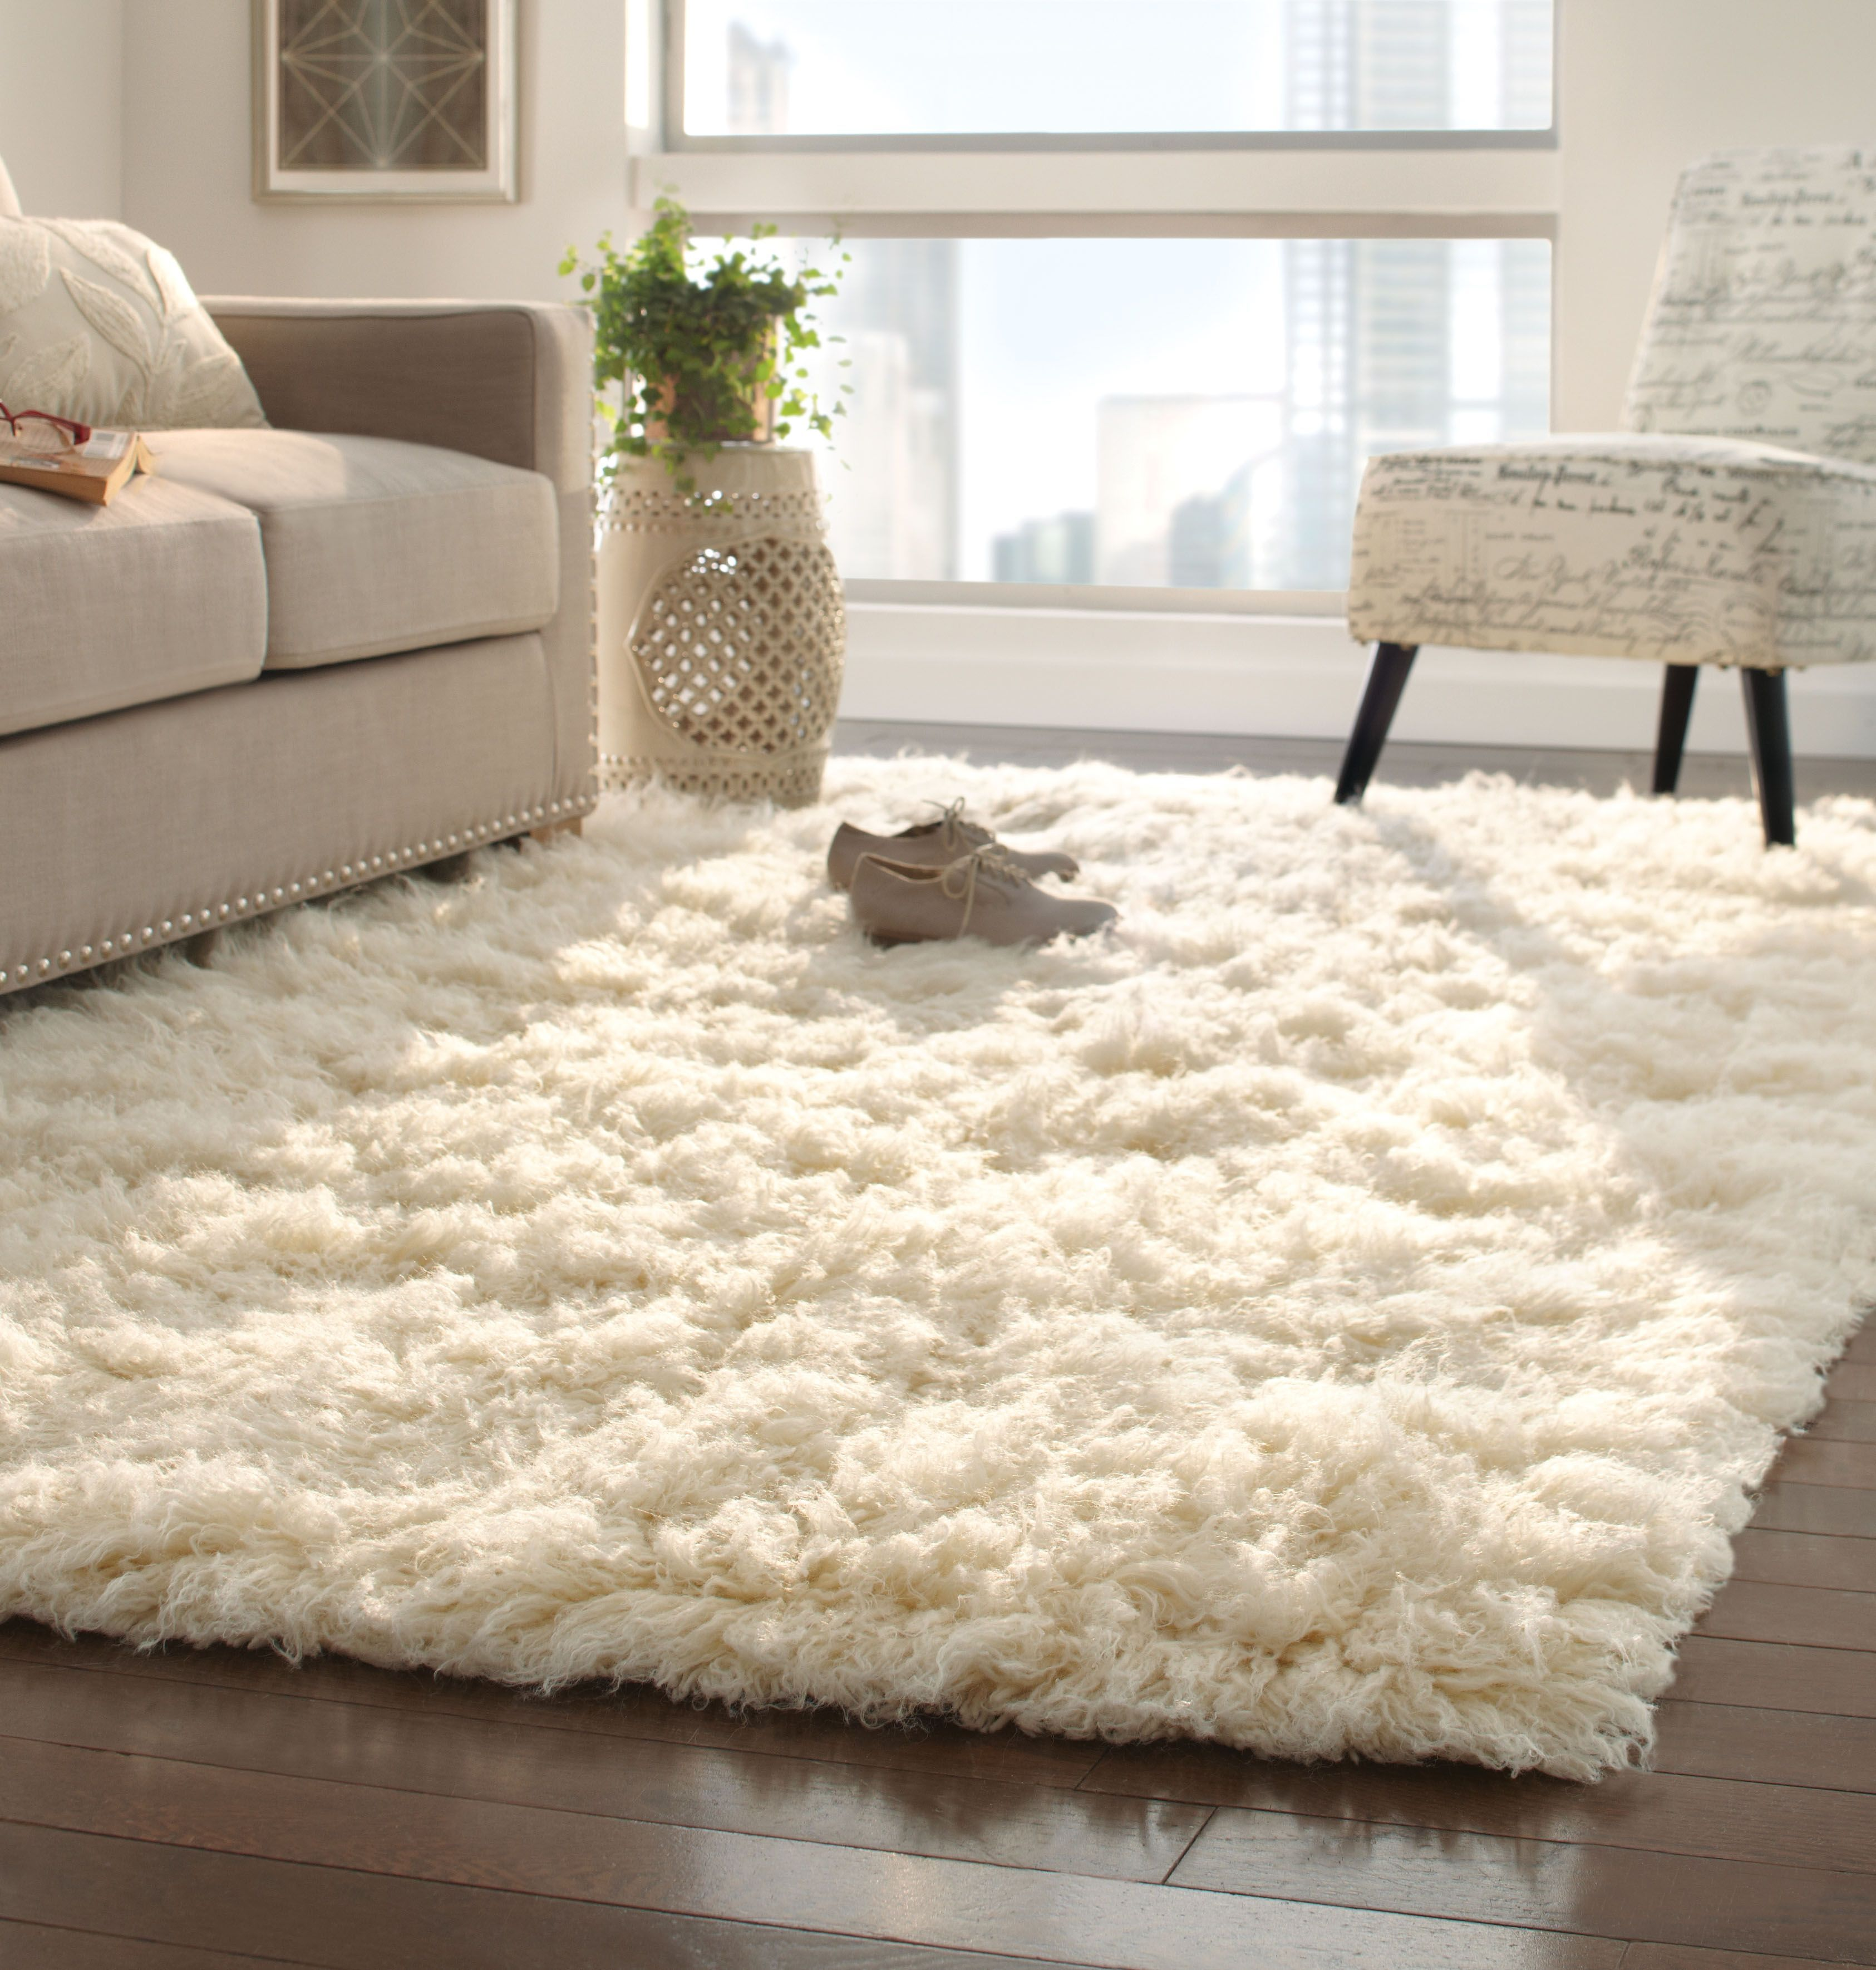 Major Fluffy Softness Going On Here Can T Get Enough Of A 100 New Zealand Wool Rug Its Softness Comes From Being Washed Haus Deko Flauschiger Teppich Dekor